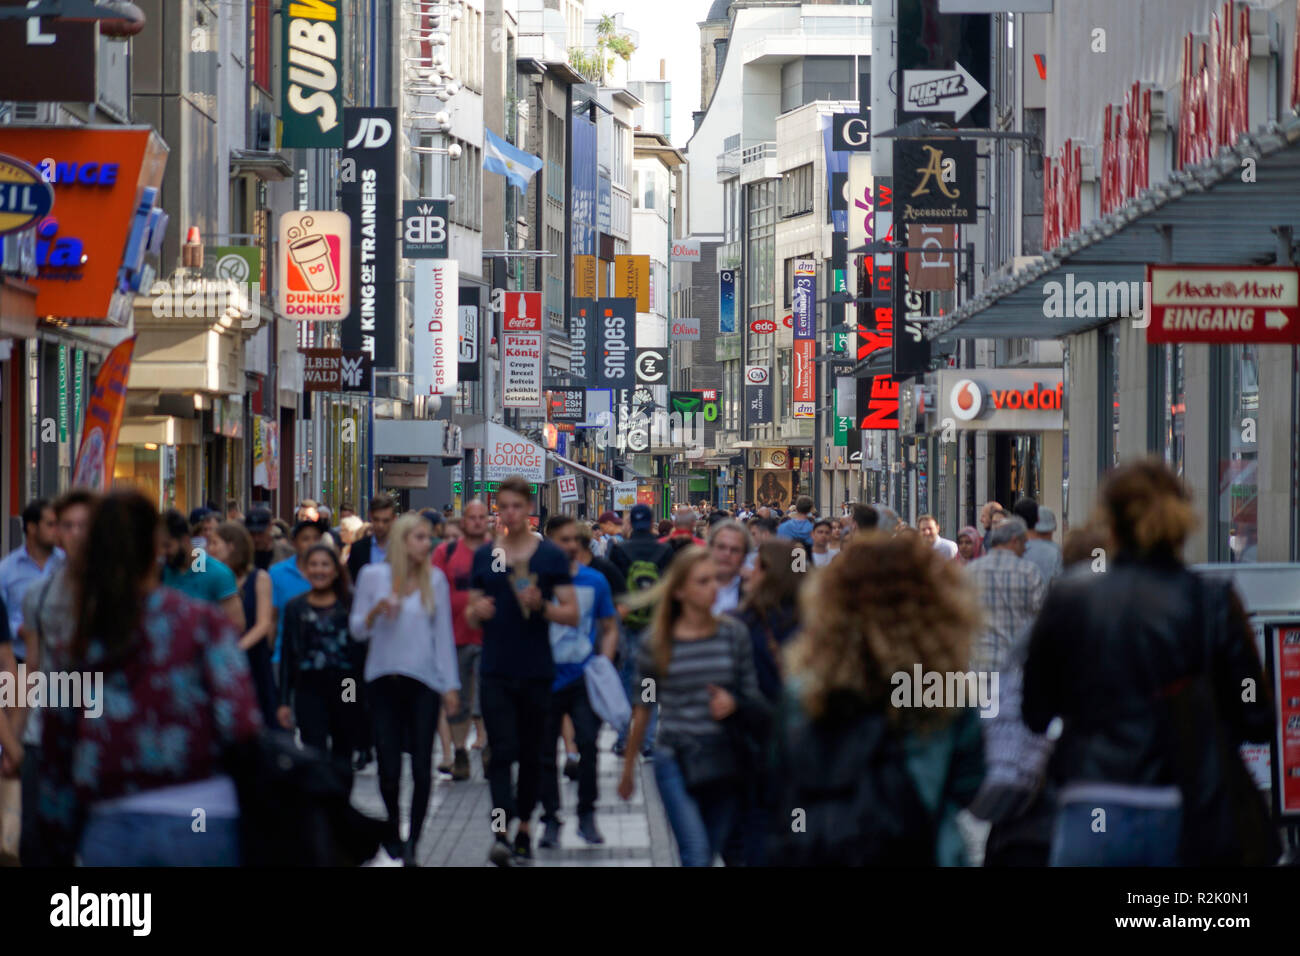 Germany, North Rhine-Westphalia, Cologne, downtown, pedestrian area, the shopping street Hohe Straße, people shopping Stock Photo